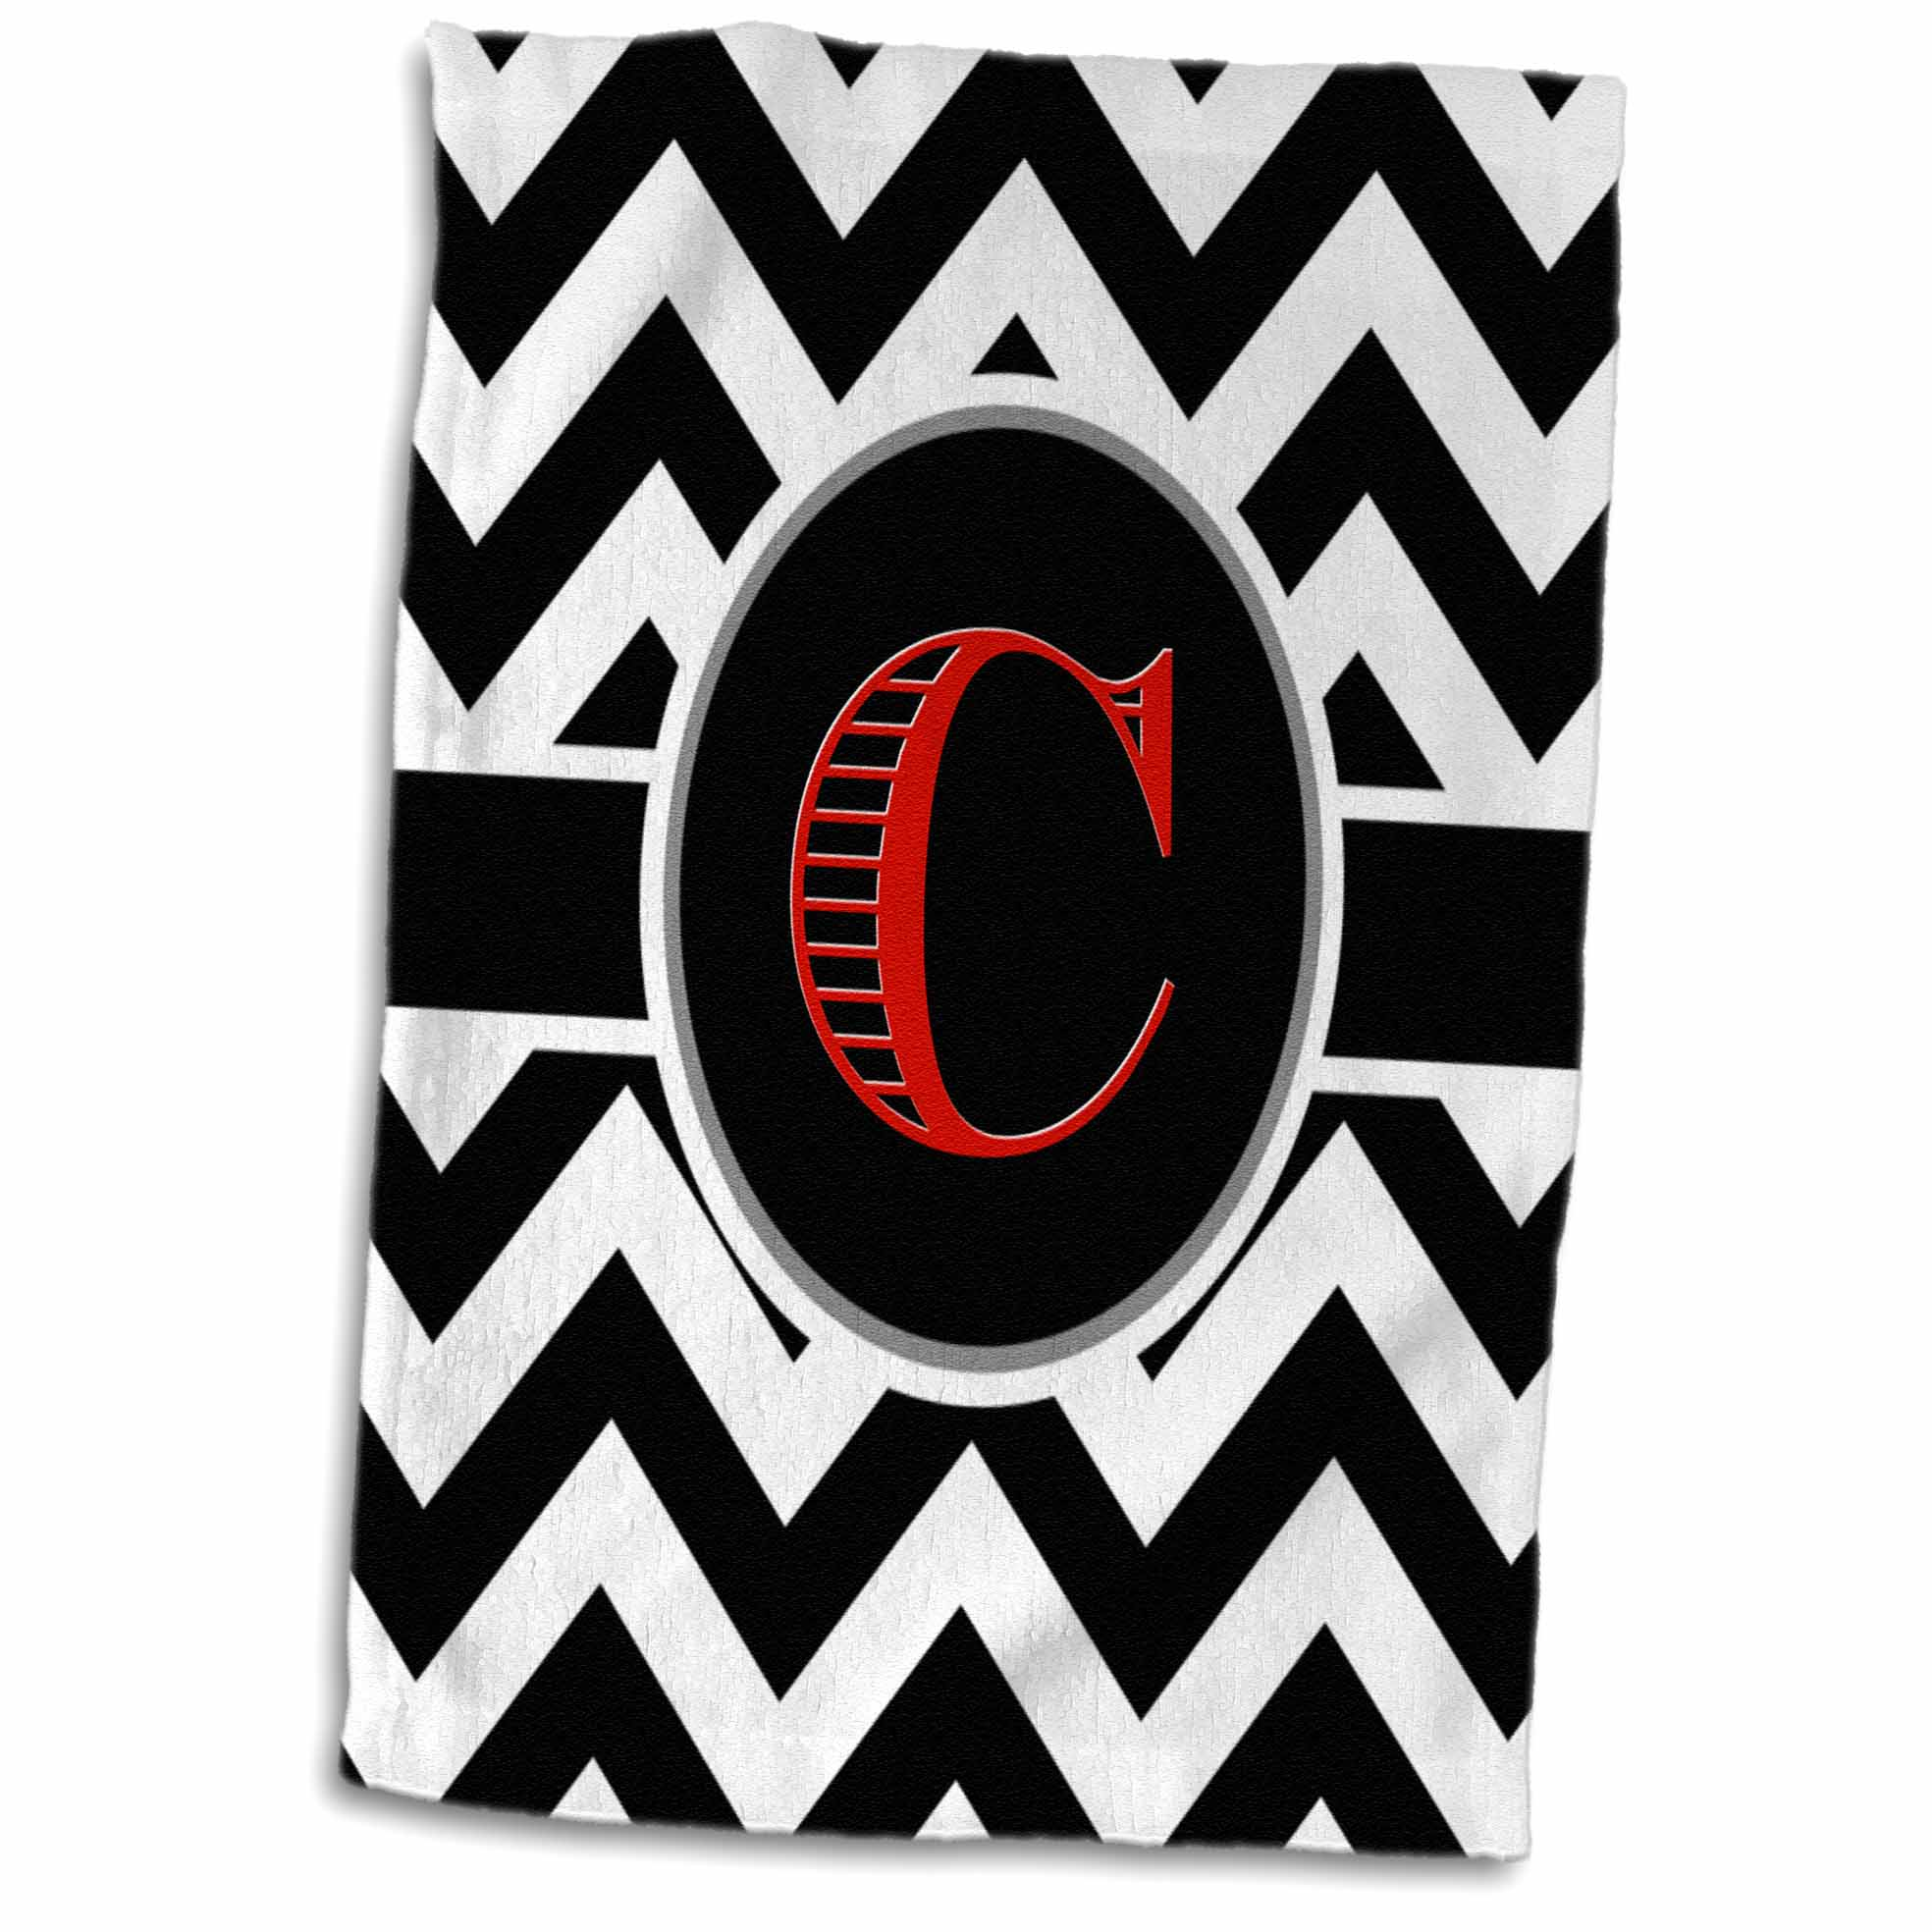 3dRose Black and white chevron monogram red initial C - Towel, 15 by 22-inch